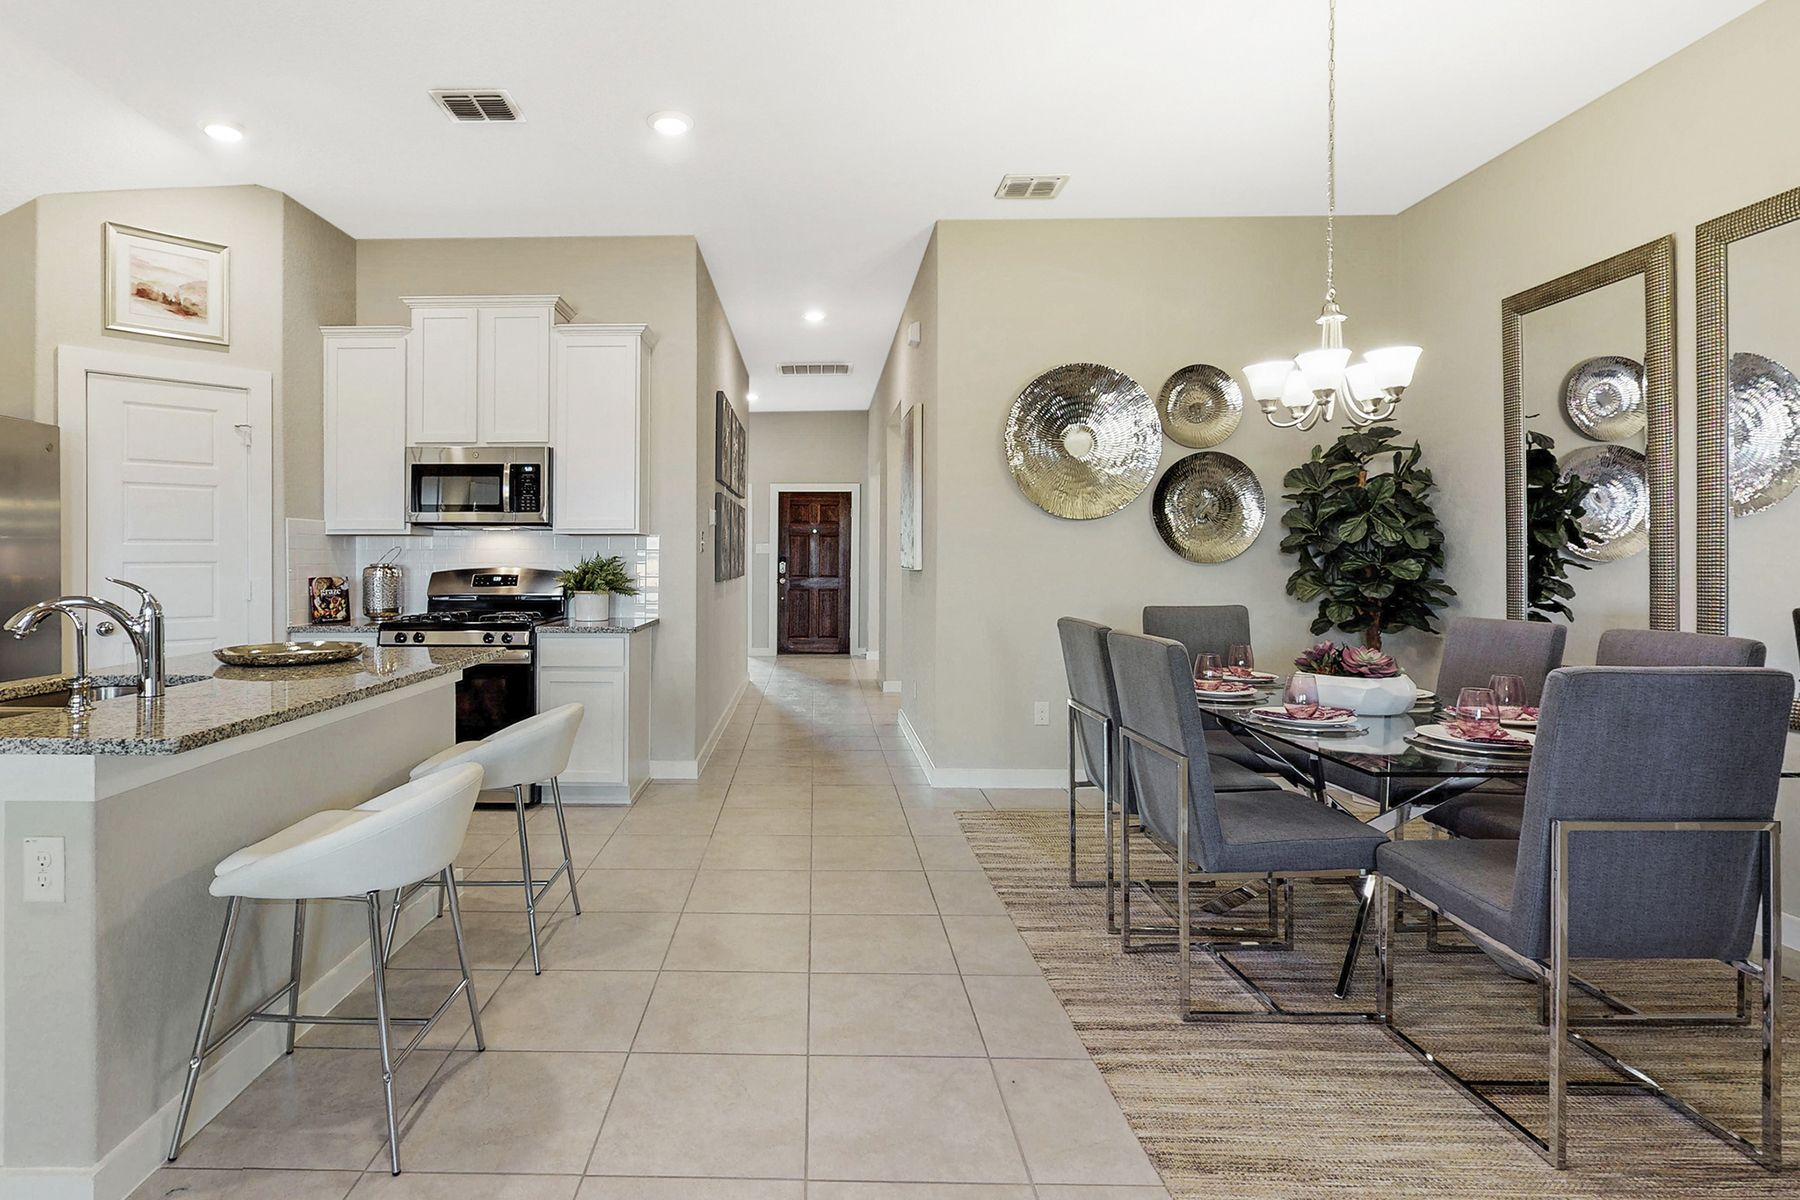 Kitchen featured in the Freestone By M/I Homes in San Antonio, TX